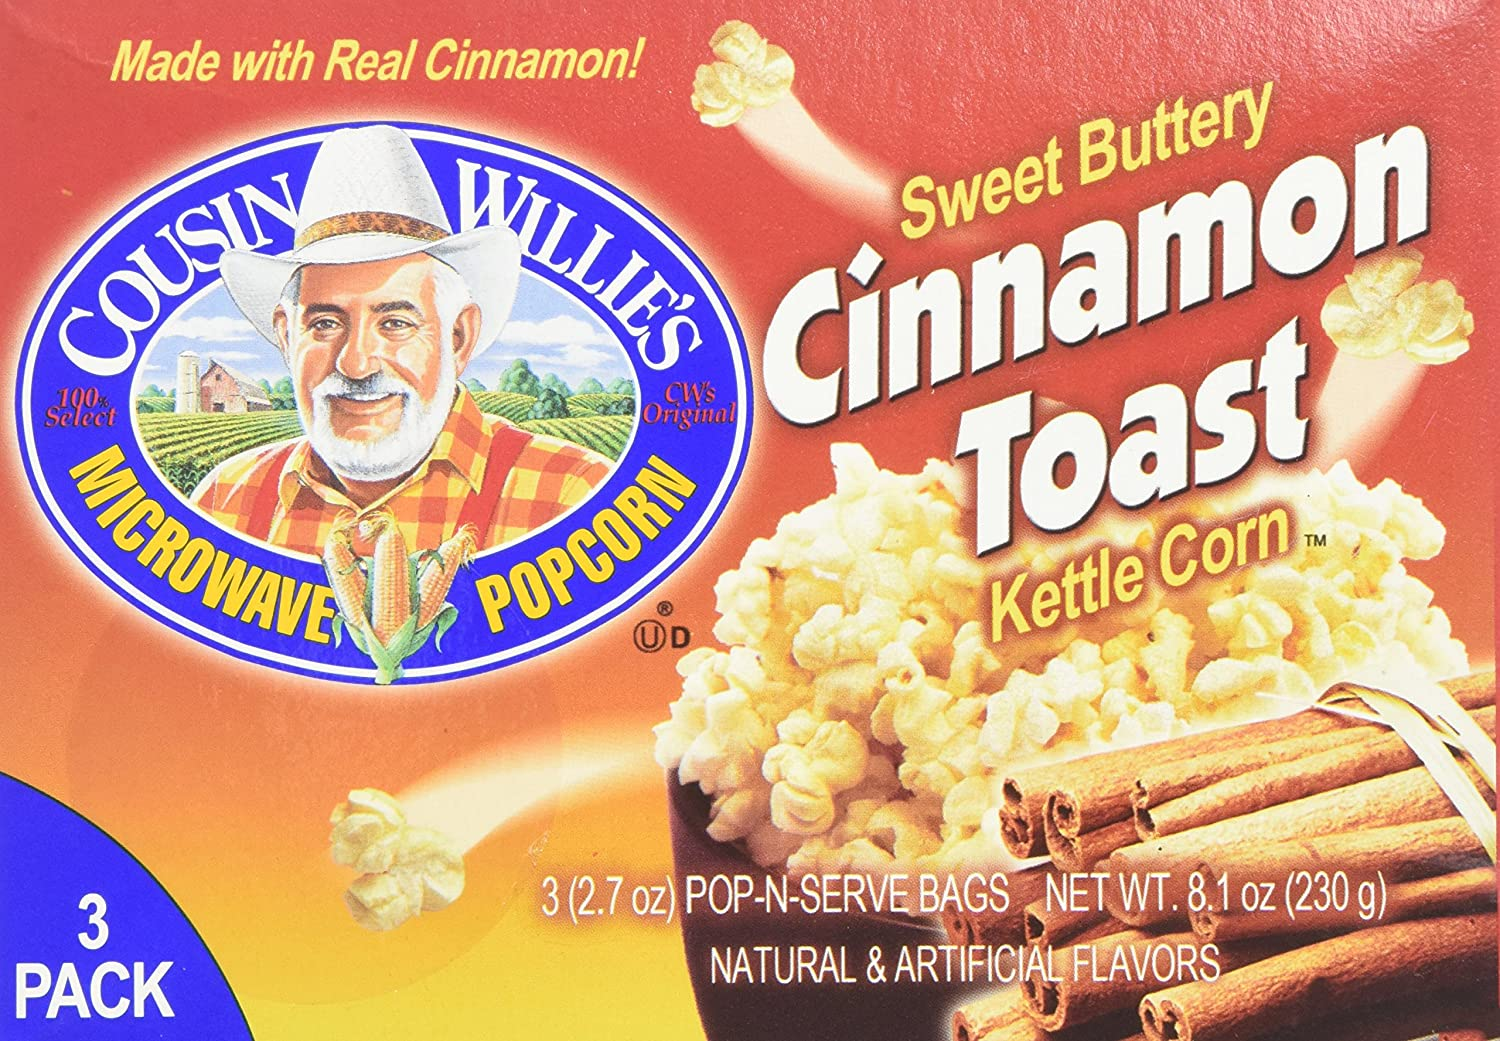 Cousin Max 65% OFF Willie's Microwave Popcorn Sweet Buttery Weekly update Toast Cinnamon K